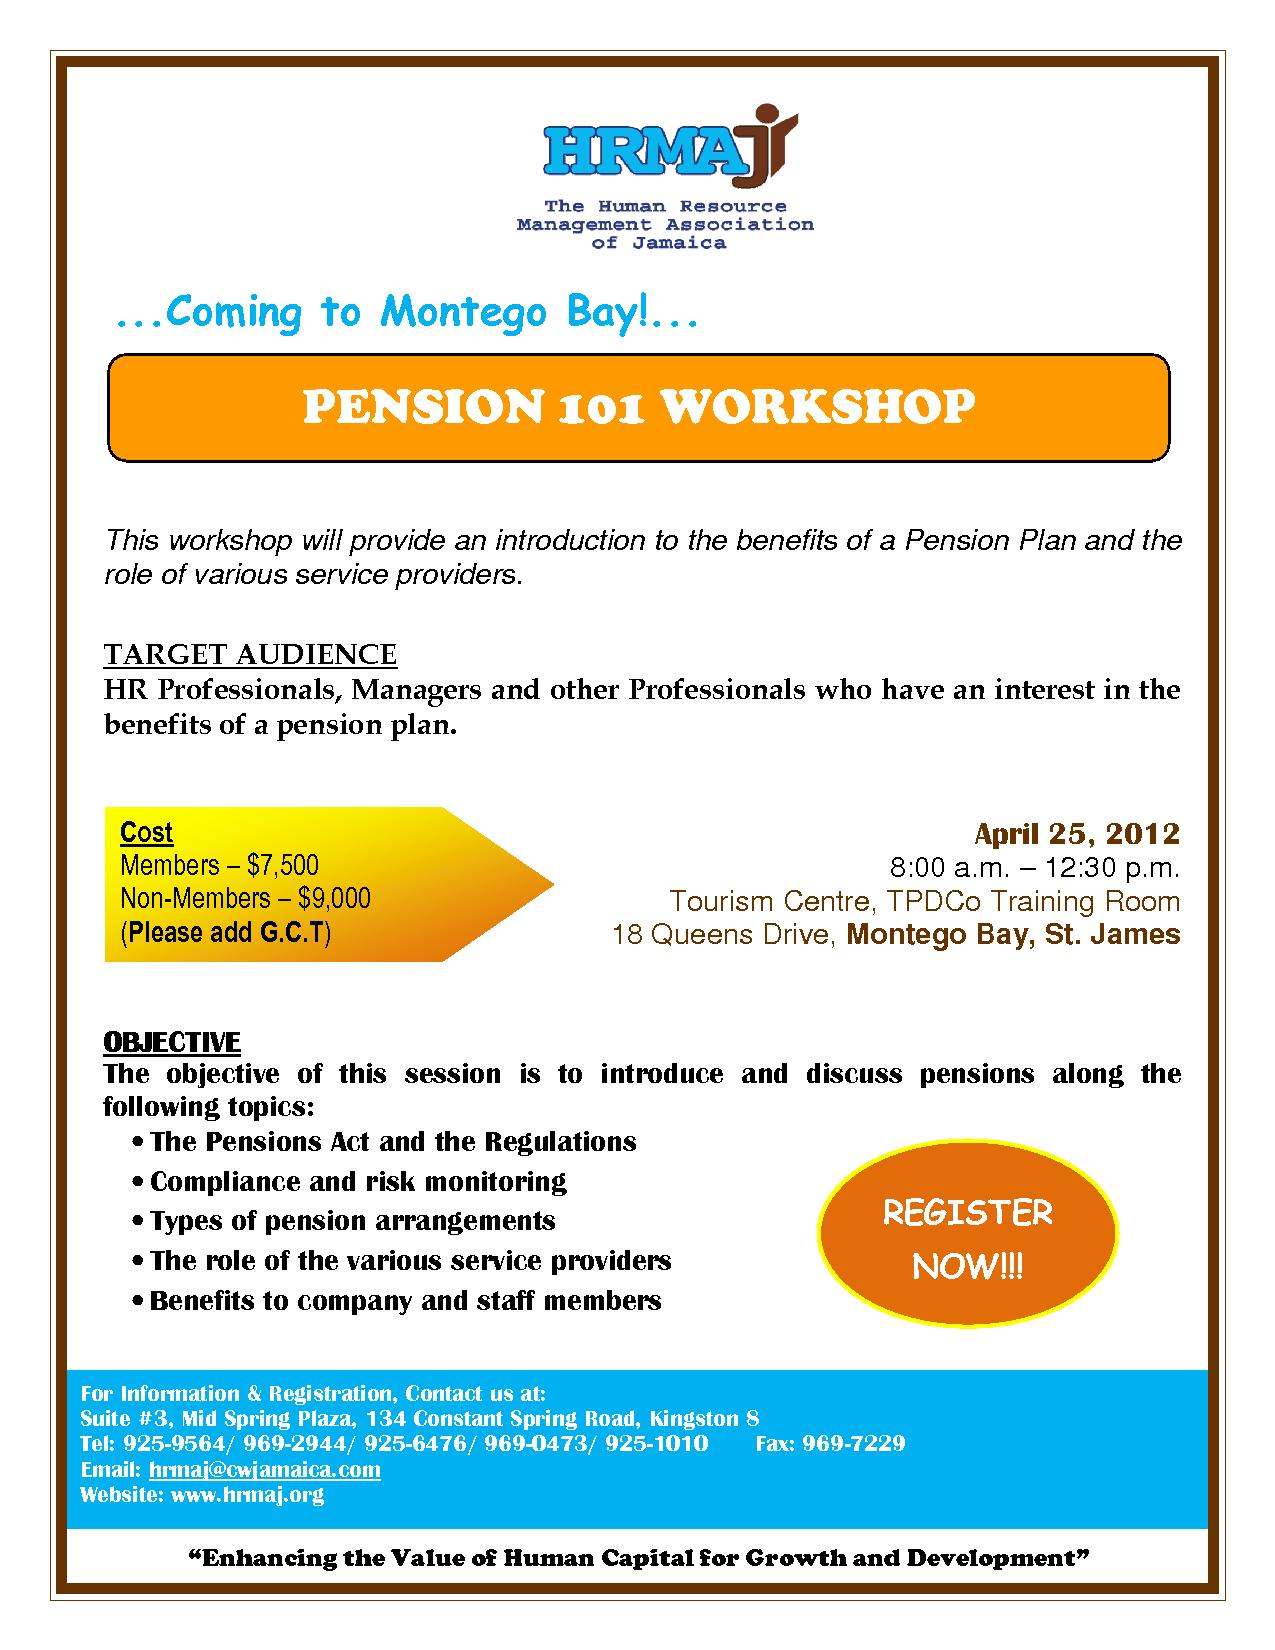 Pension 101 Workshop